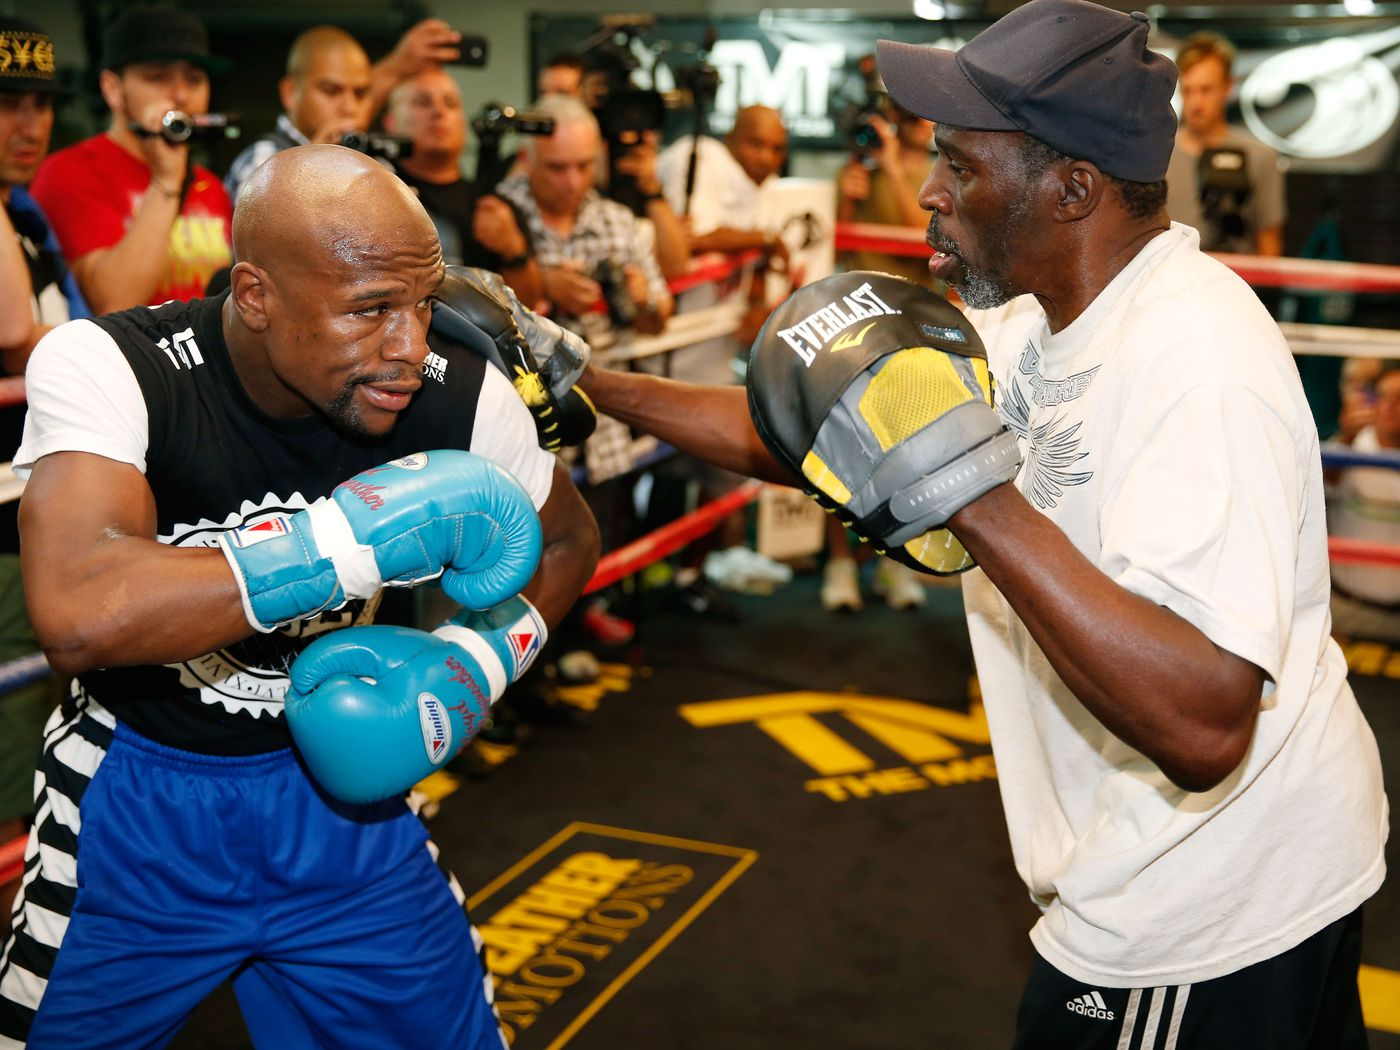 Delicioso embarazada Calle principal  Roger Mayweather, uncle and trainer to Floyd Mayweather, passes away at age  58 - MMAmania.com